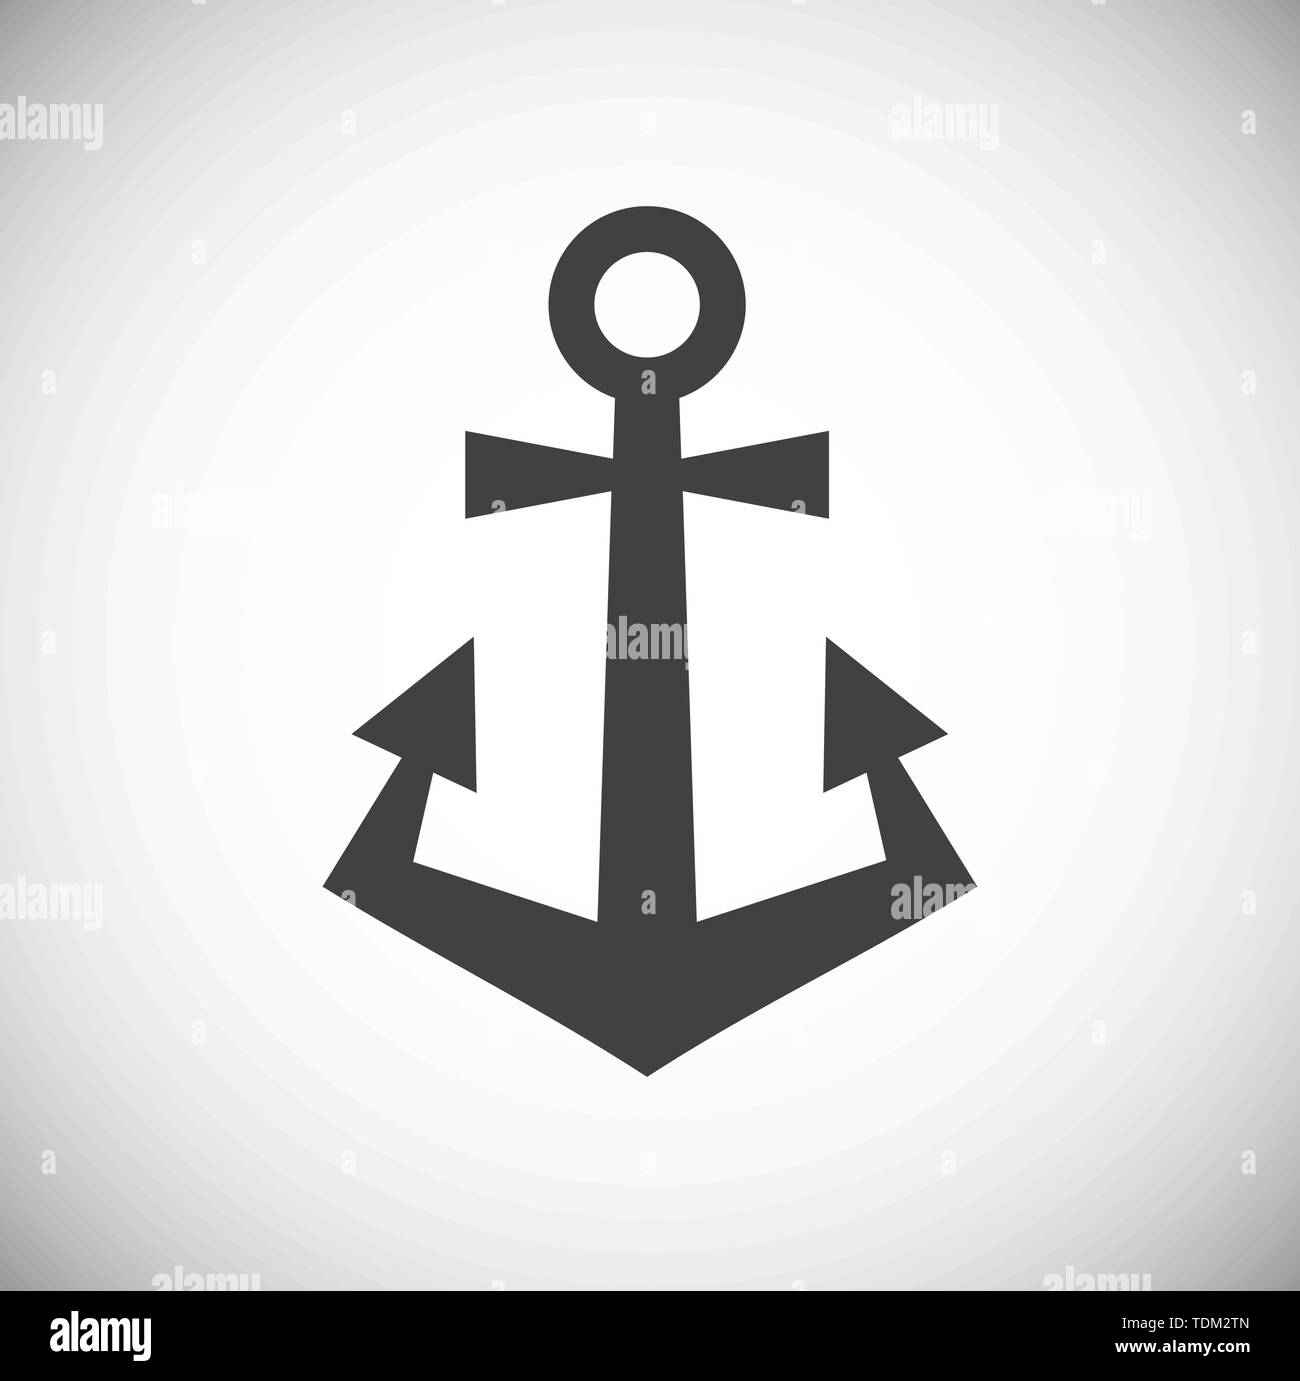 Anchor icon on background for graphic and web design. Simple illustration. Internet concept symbol for website button or mobile app. - Stock Image